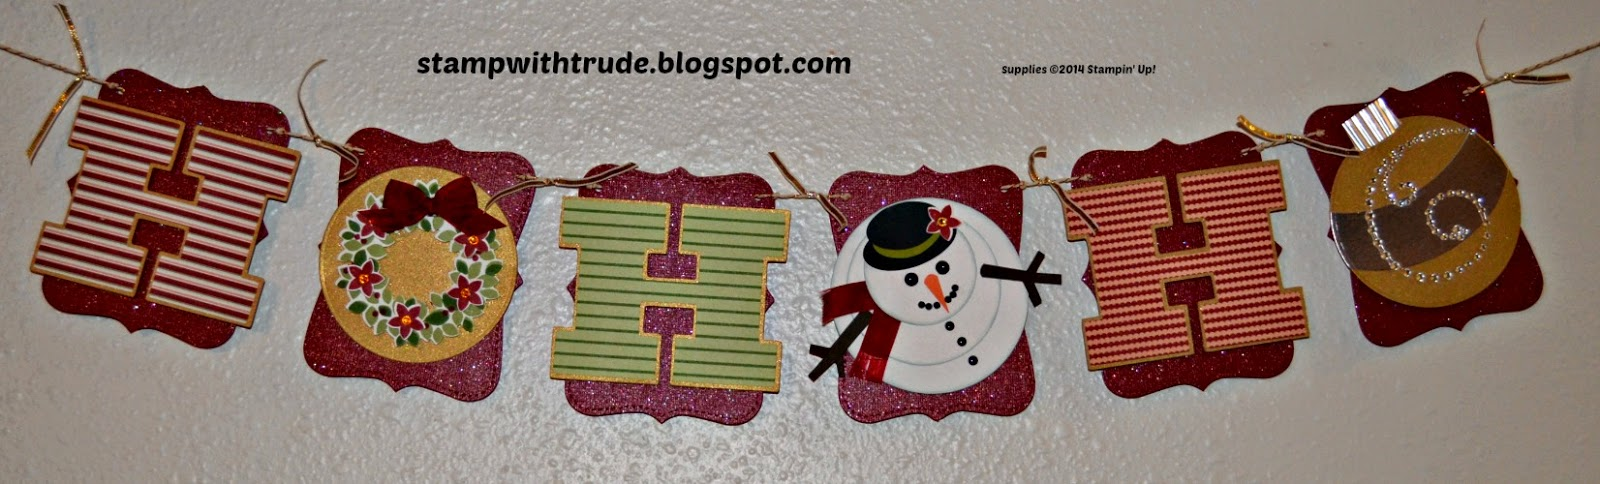 Ho Ho Ho Banner, Stampin' Up!, Wondrous Wreath, stampwithtrude.blogspot.com , Trude Thoman, Christmas Banner